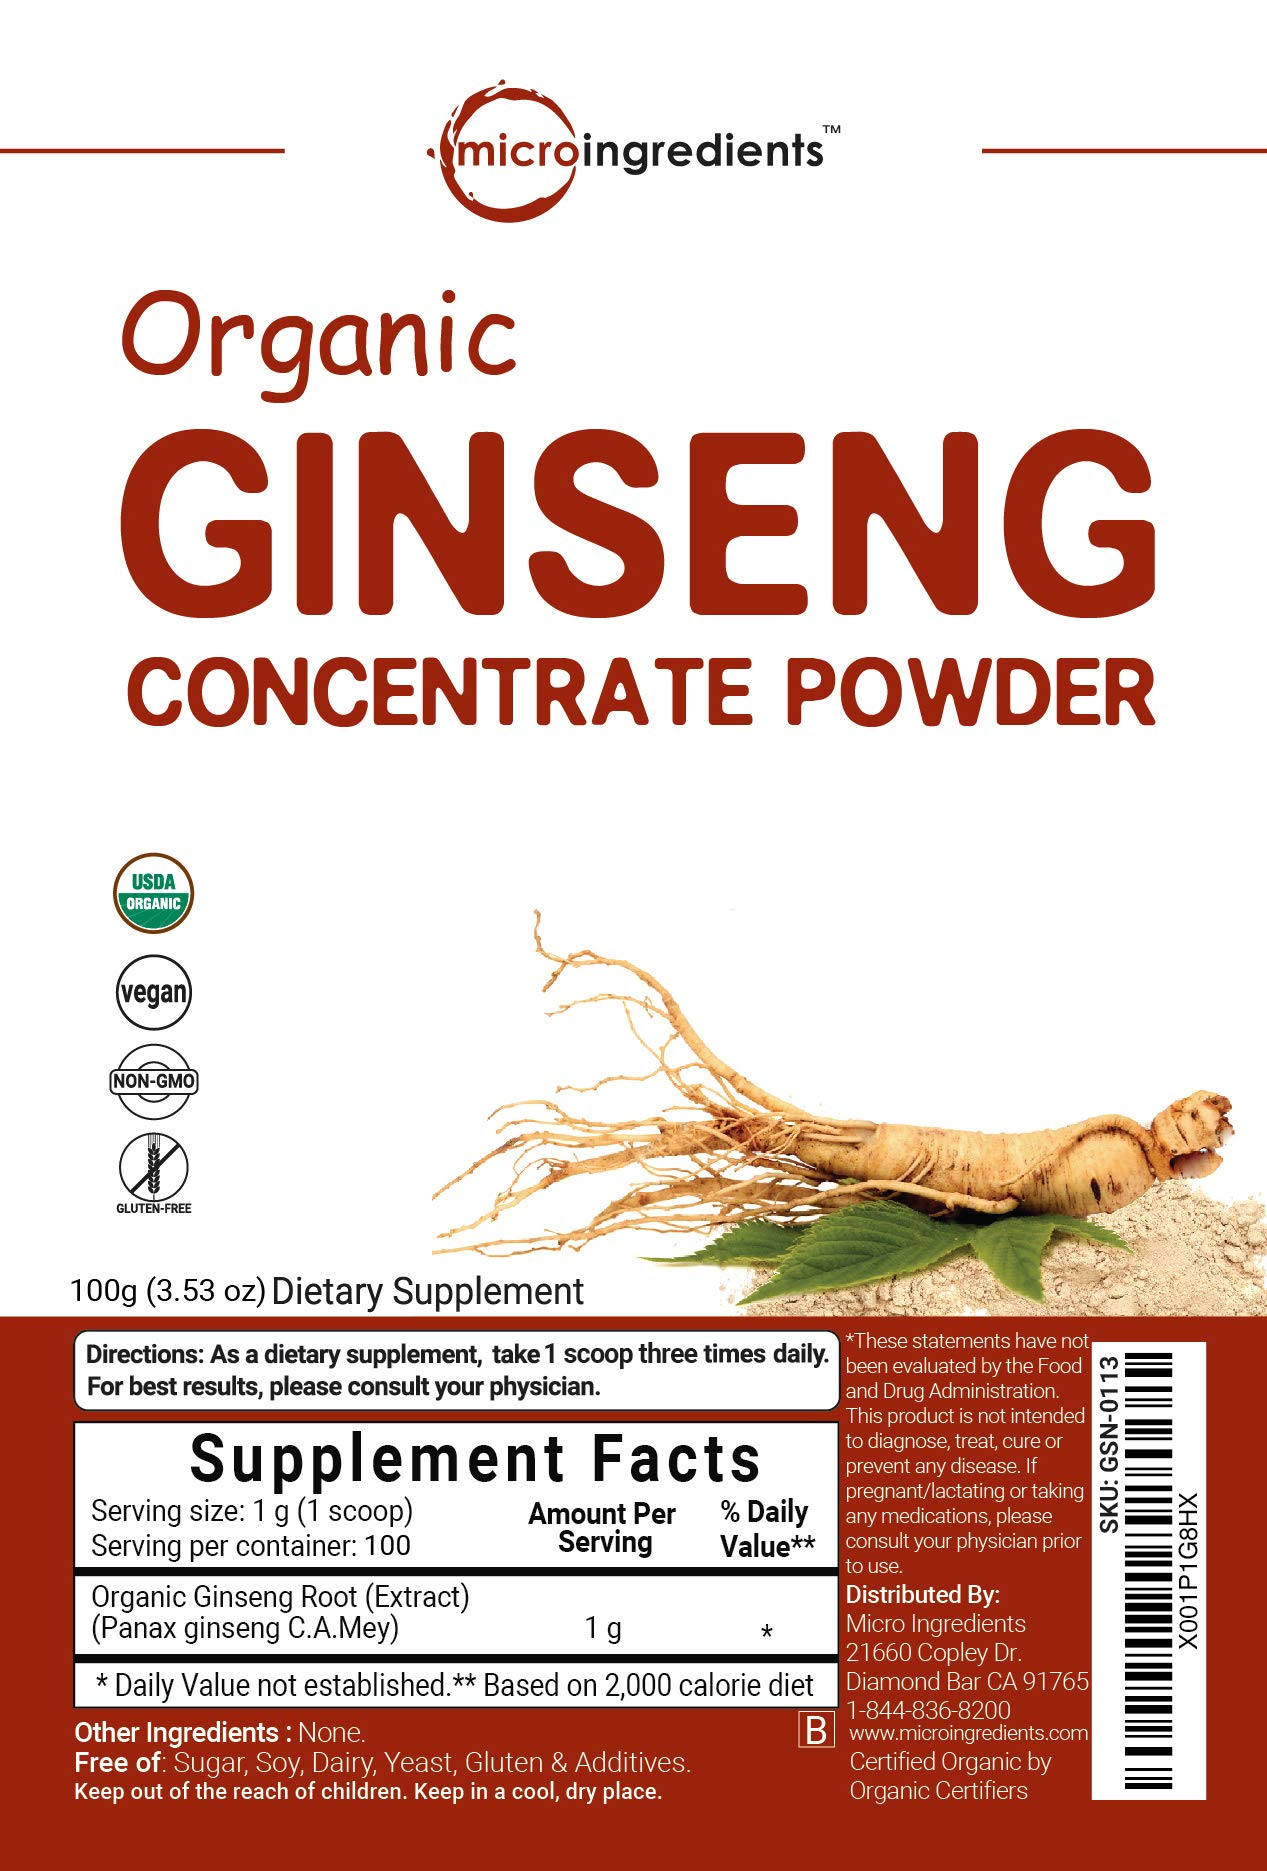 Maximum Strength Organic Ginseng Root 200:1 Powder, 4 Ounce, Support Energy, Immune, Mental Health & Physical Performance, Non-Irradiated, Non-Pesticide, Non-GMO and Vegan Friendly by Micro Ingredients (Image #5)